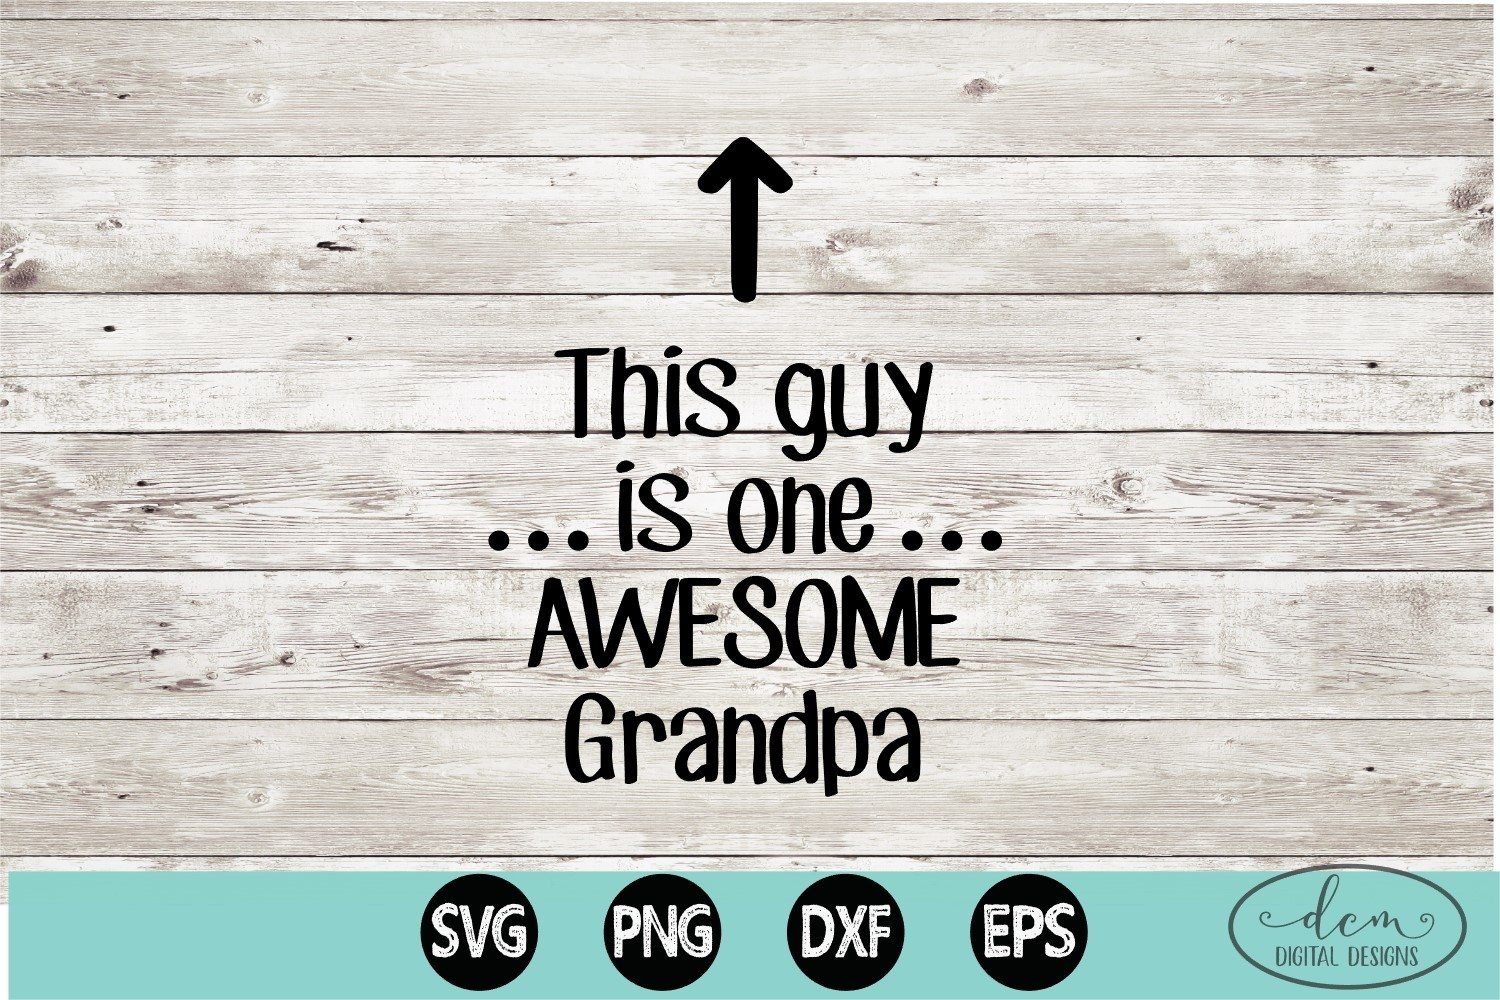 Free Awesome Grandpa Svg For Father S Day Grandpa Cut File 1007926 Cut Files Design Bundles SVG, PNG, EPS DXF File